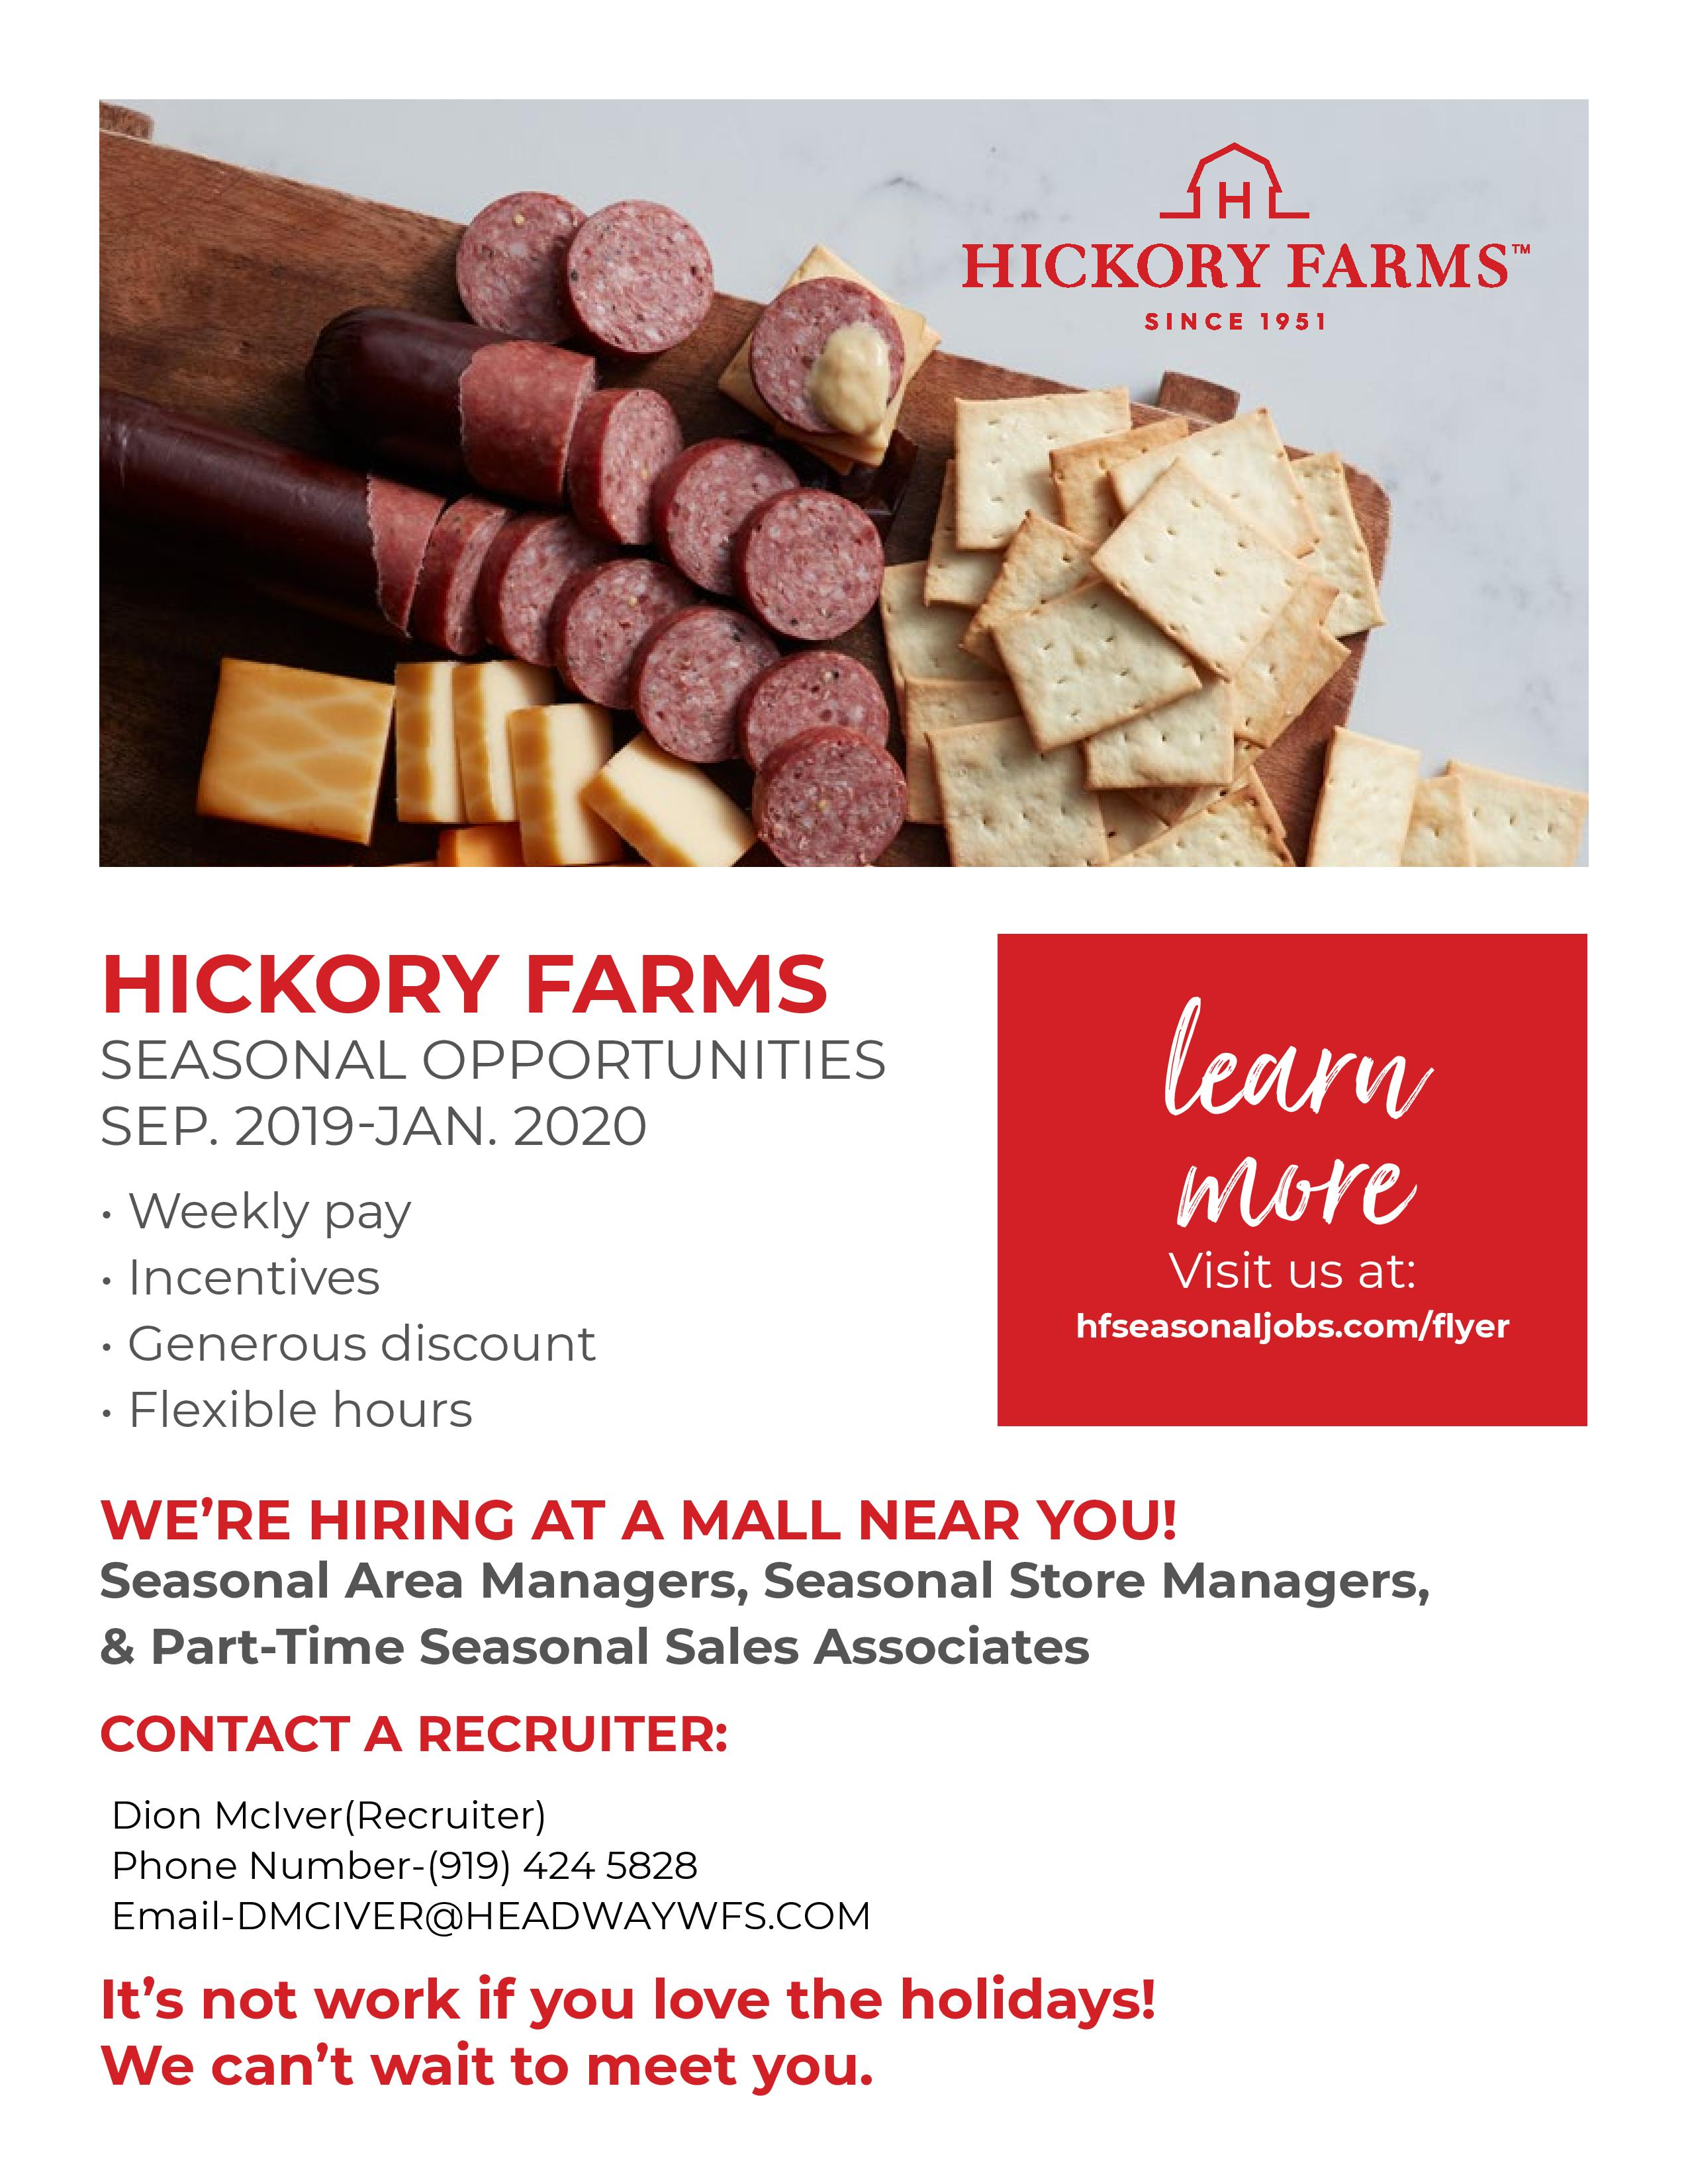 hickory farms seasonal opportunities information